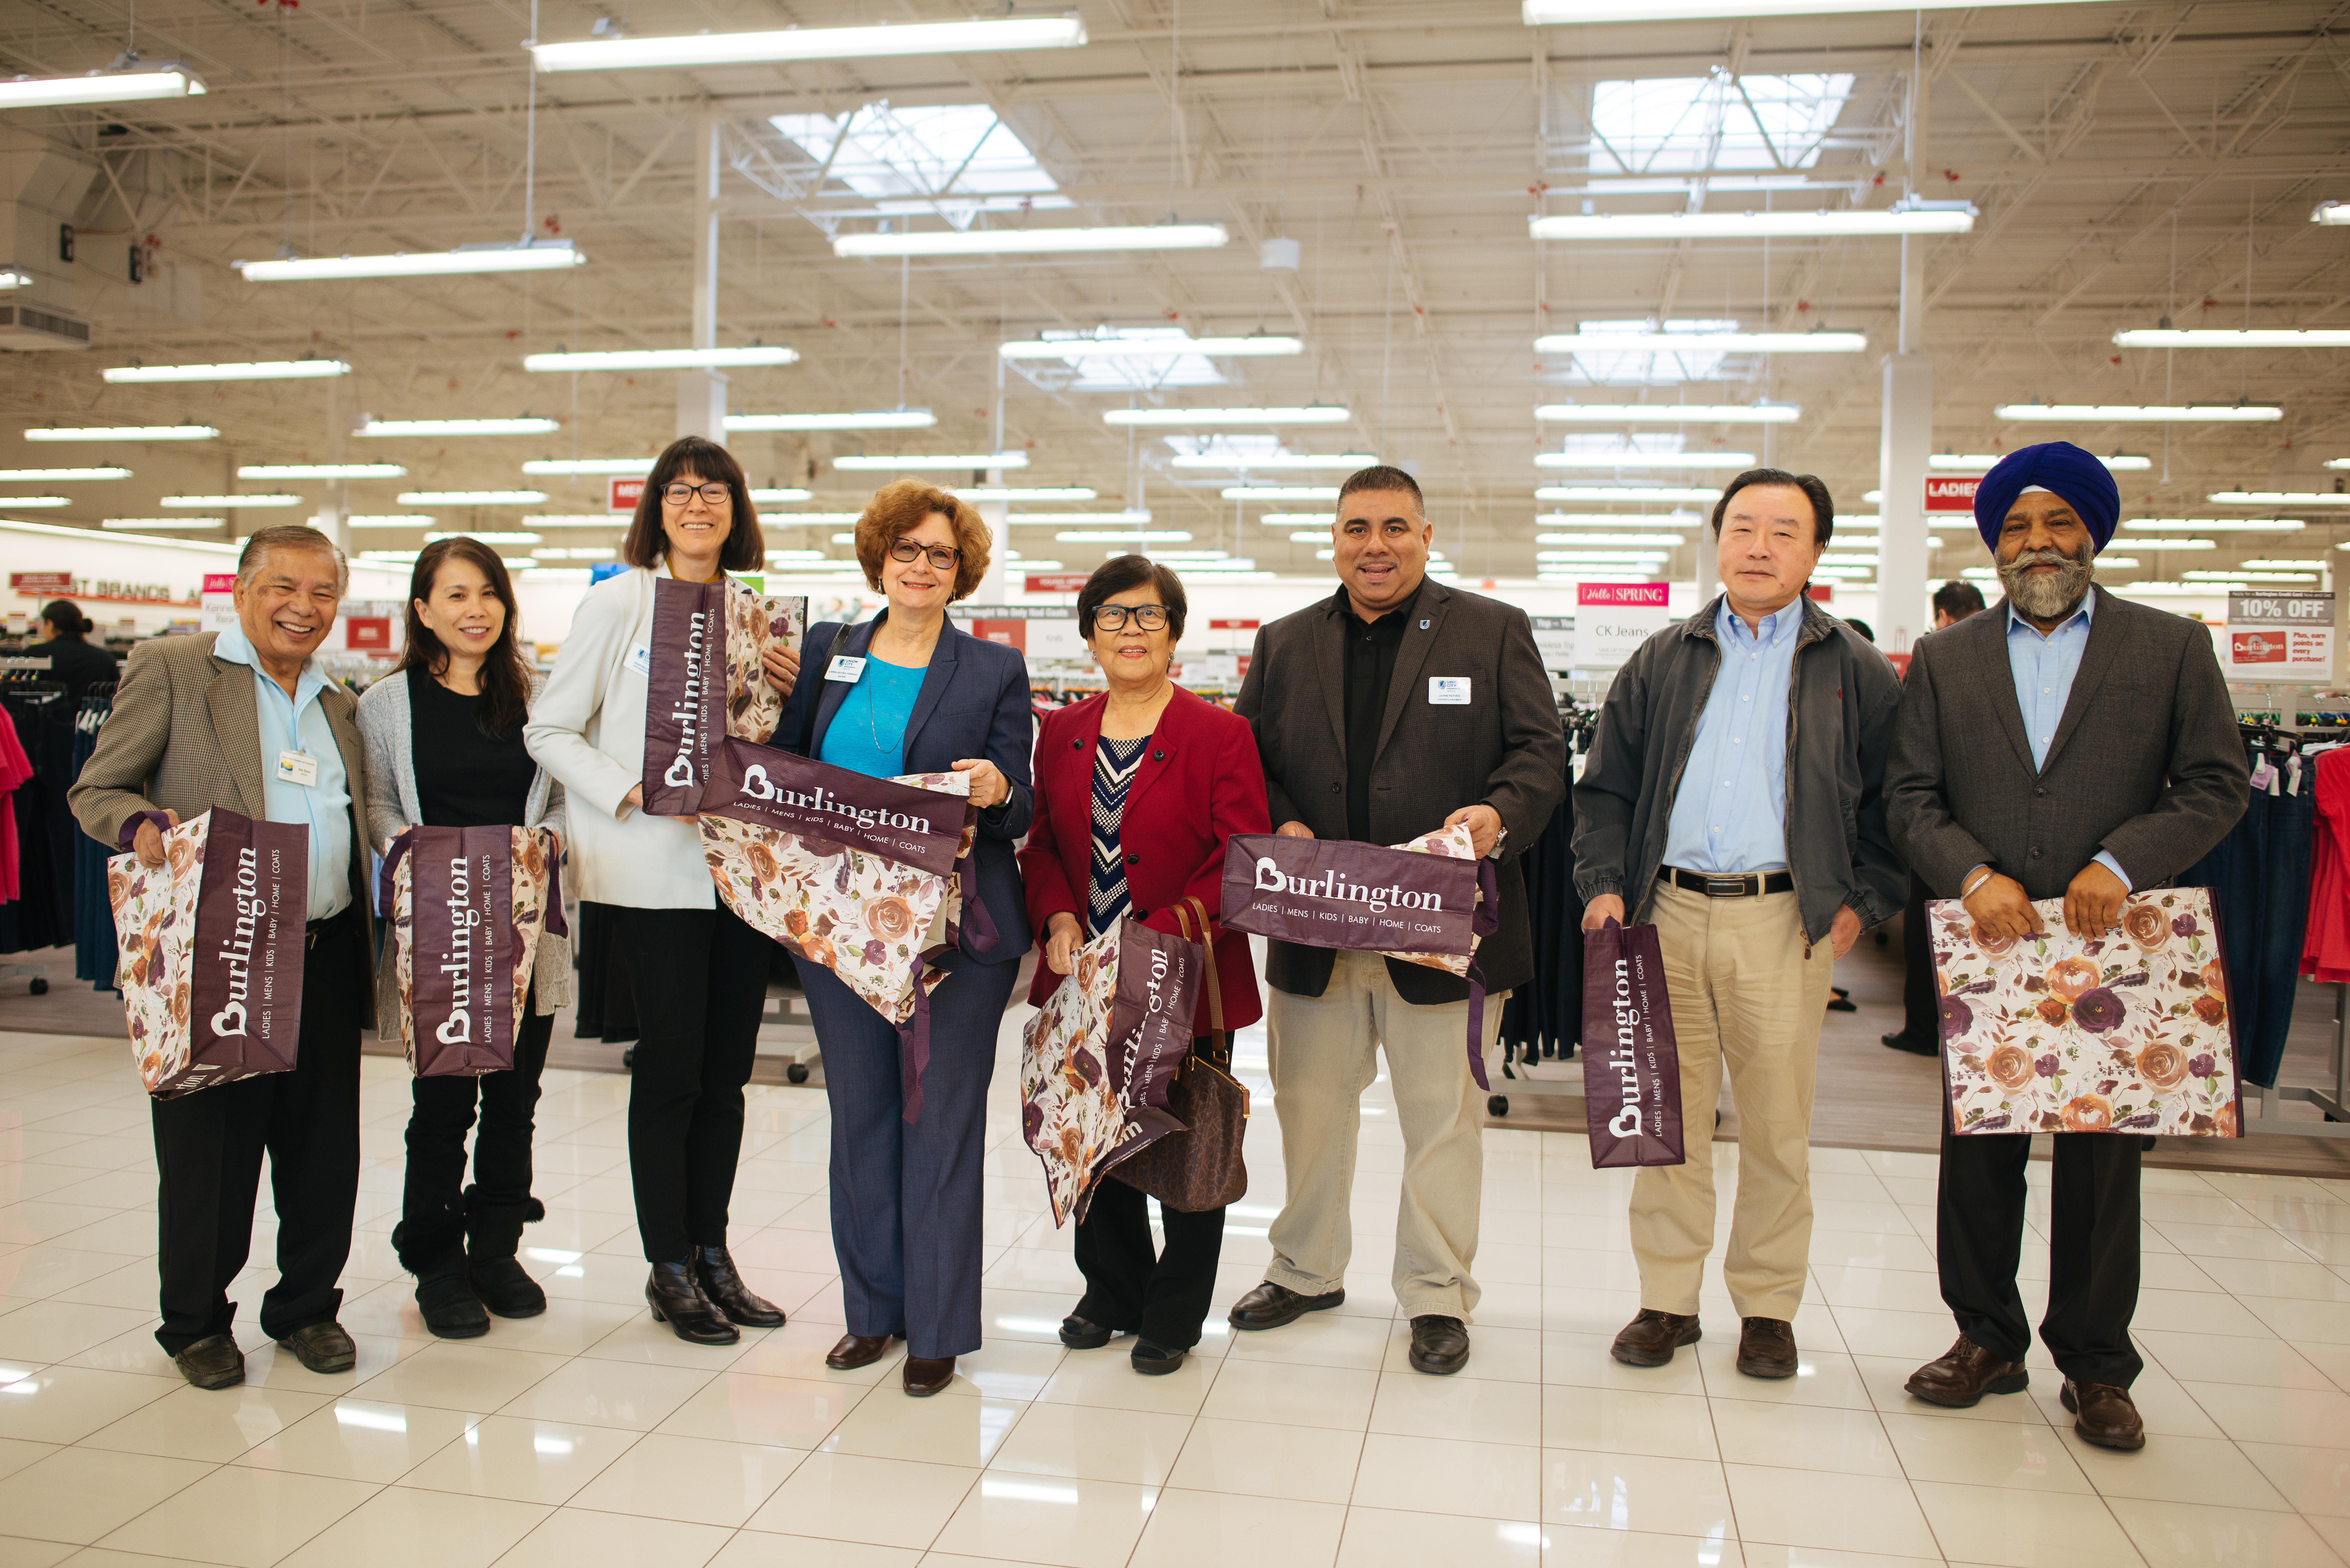 Representatives inside Burlington holding floral Burlington tote bags.